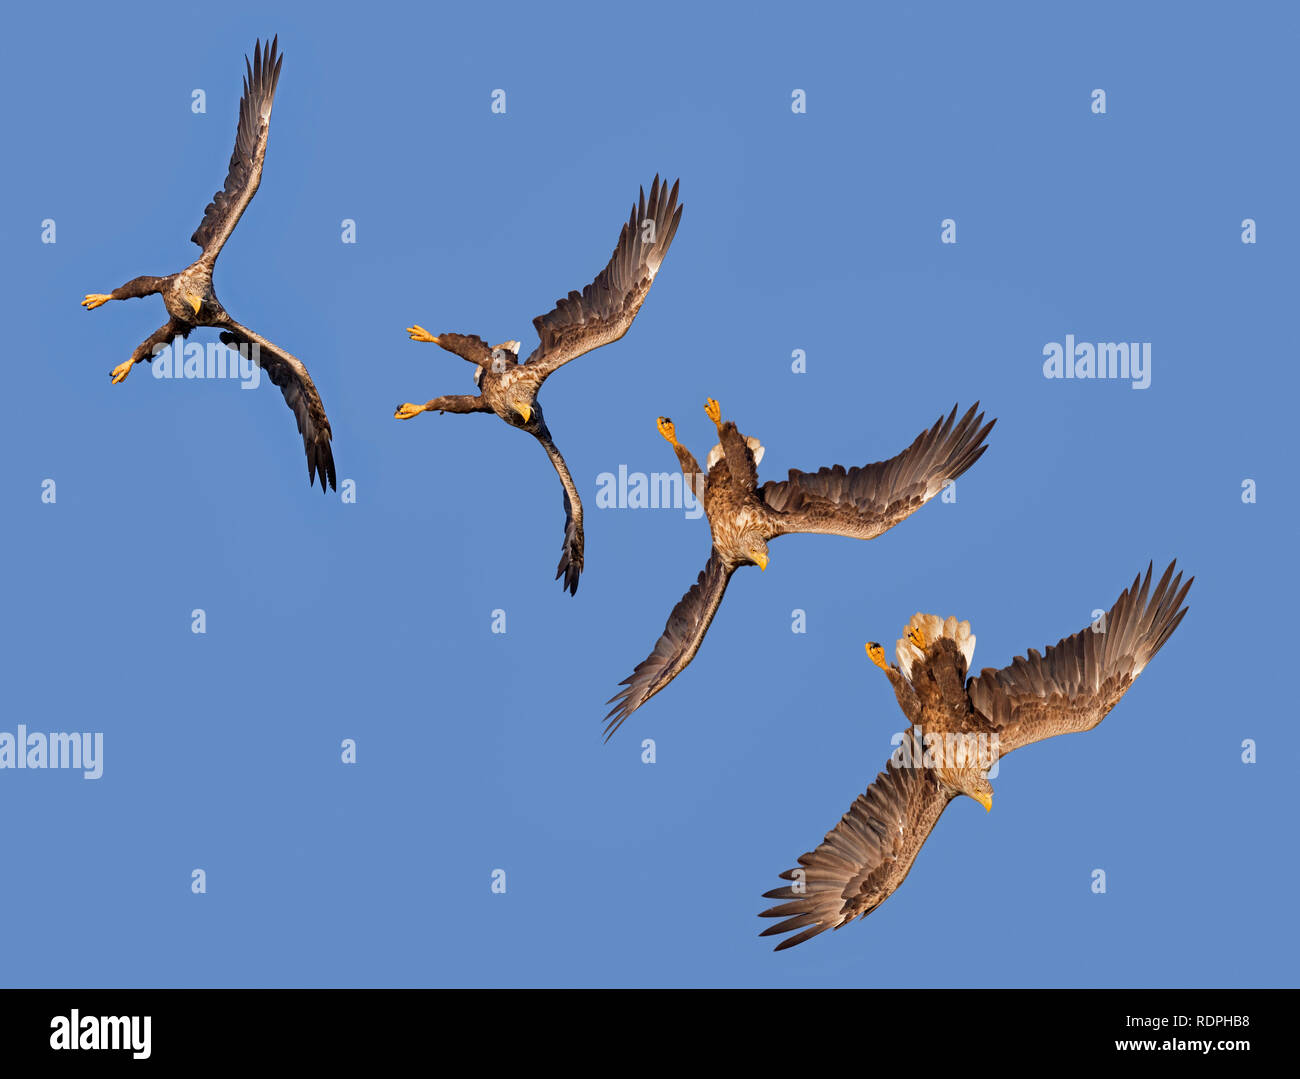 Sequence of white-tailed eagle / sea eagle / erne (Haliaeetus albicilla) in flight diving against blue sky - Stock Image